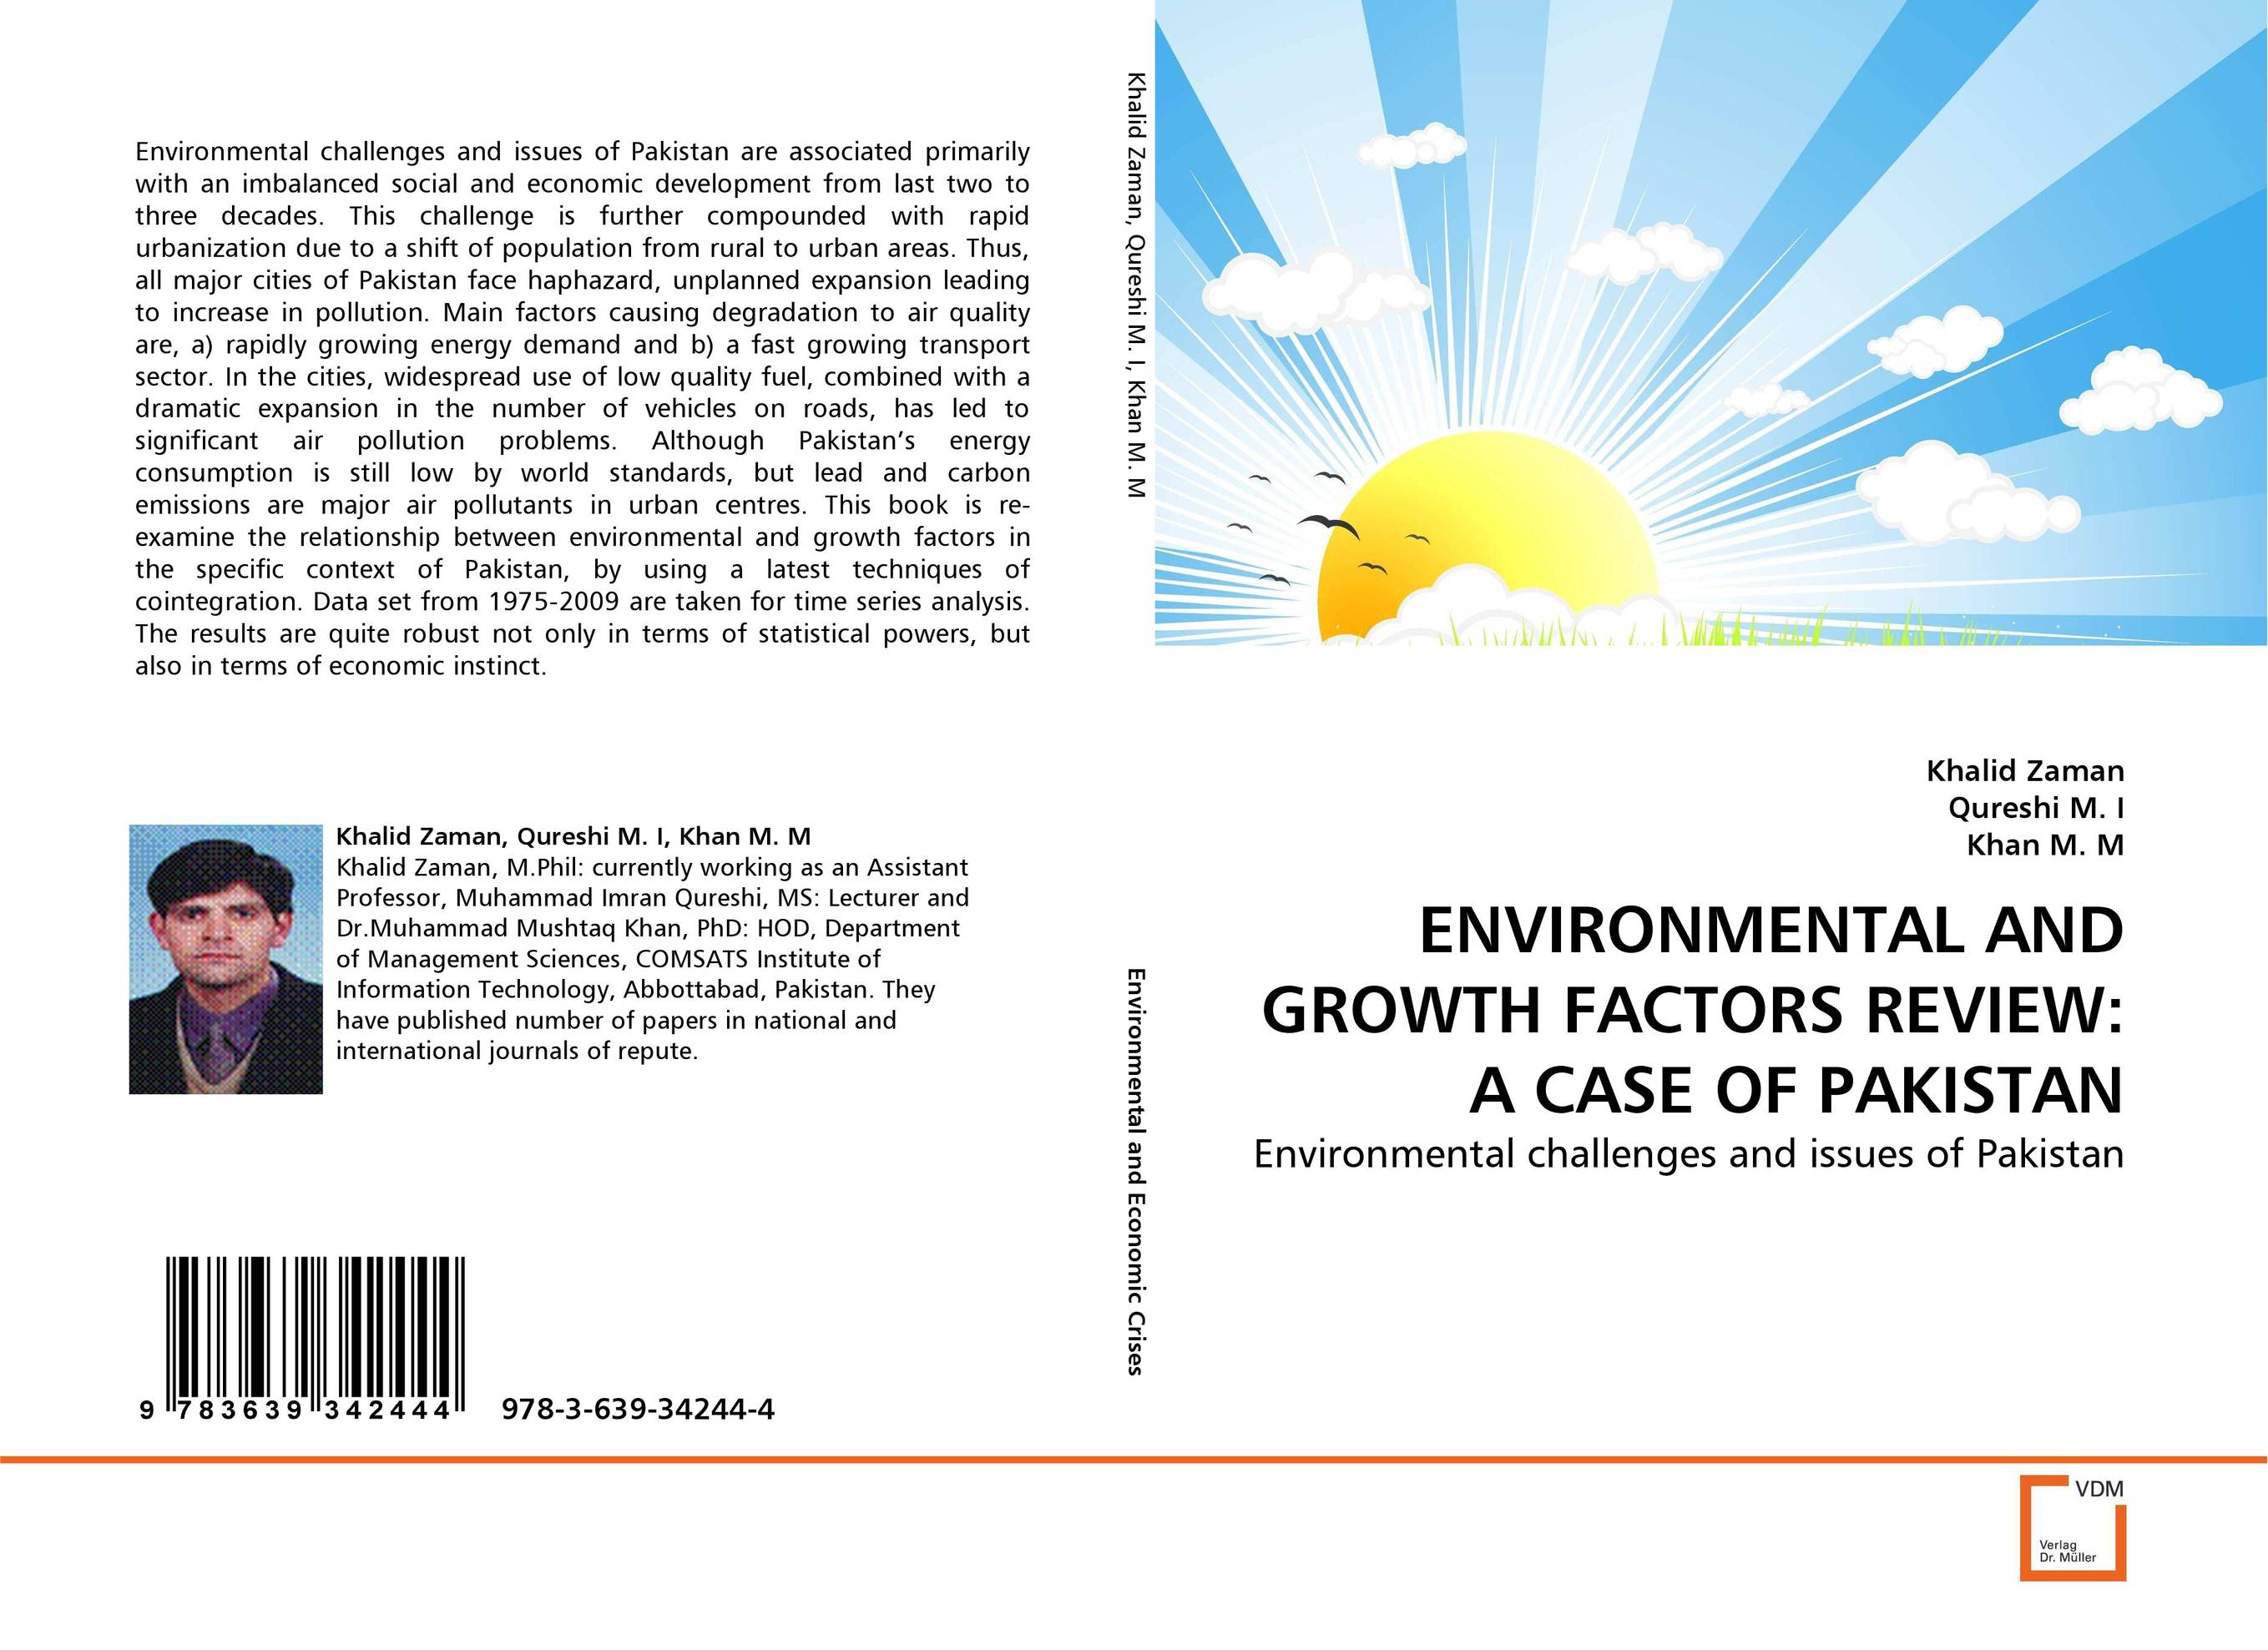 ENVIRONMENTAL AND GROWTH FACTORS REVIEW: A CASE OF PAKISTAN sampling and analysis of environmental chemical pollutants a complete guide